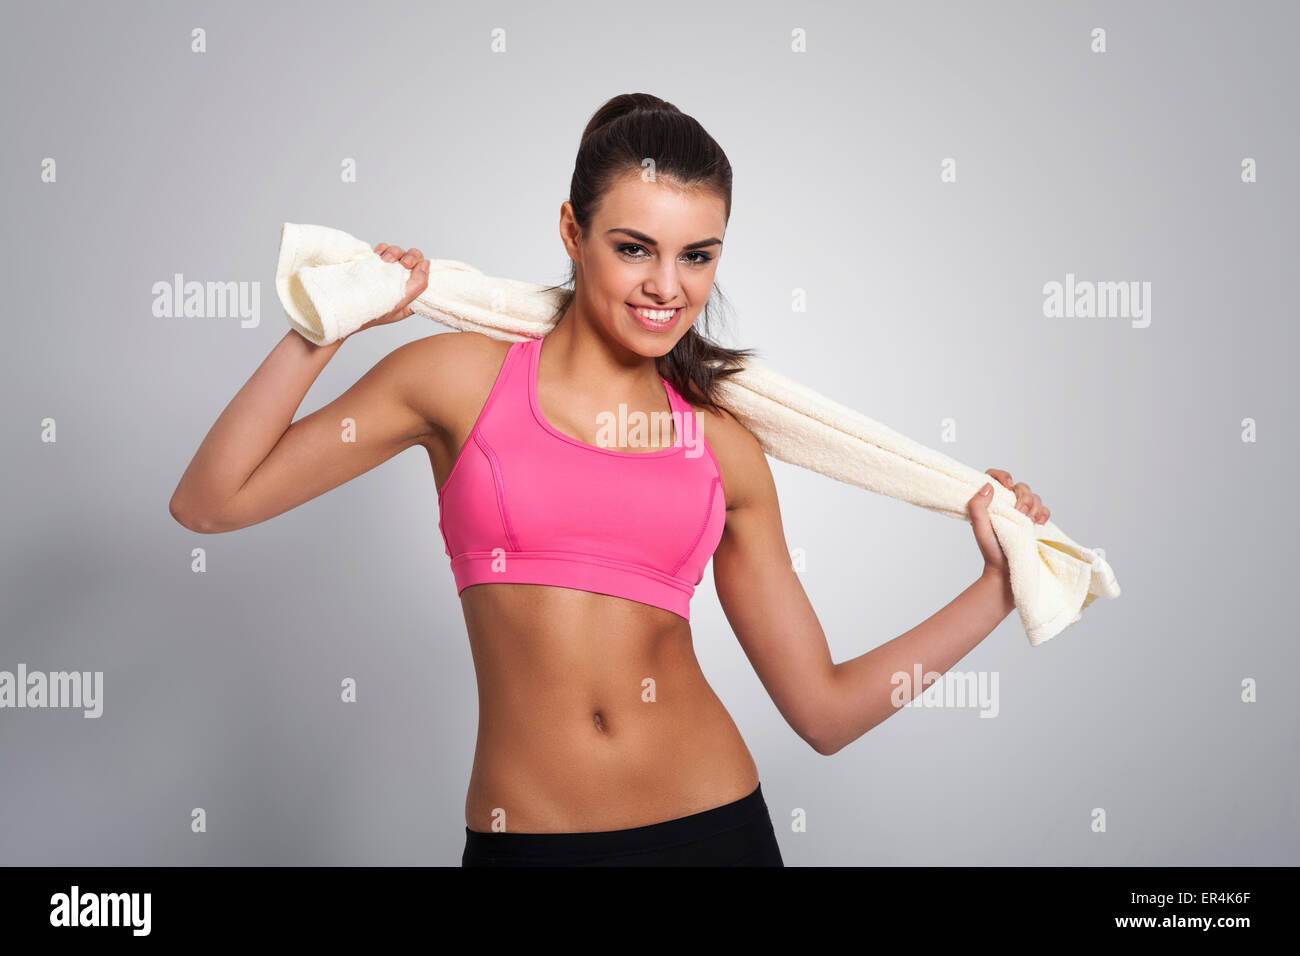 Portrait of beautiful fit woman with towel. Debica, Poland - Stock Image